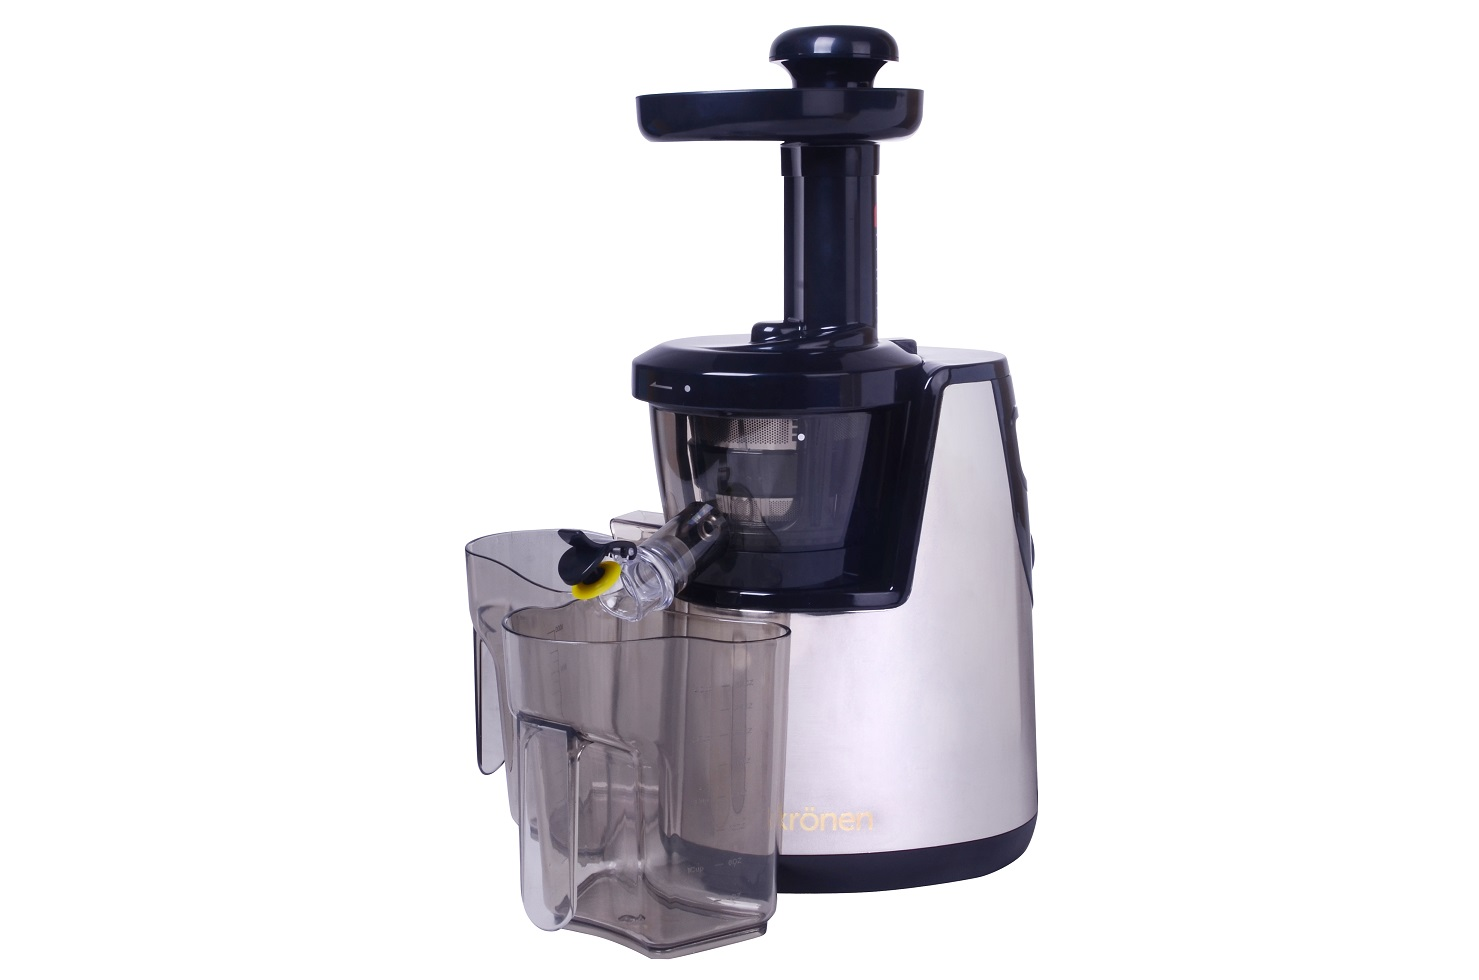 Hurom Slow Juicer New Zealand : Buy [KRoNEN KR-SJ01 SLOW JUICER] READY STOCK IN SG 2YR WARRANTY SAFETY MARK LUXURY ...